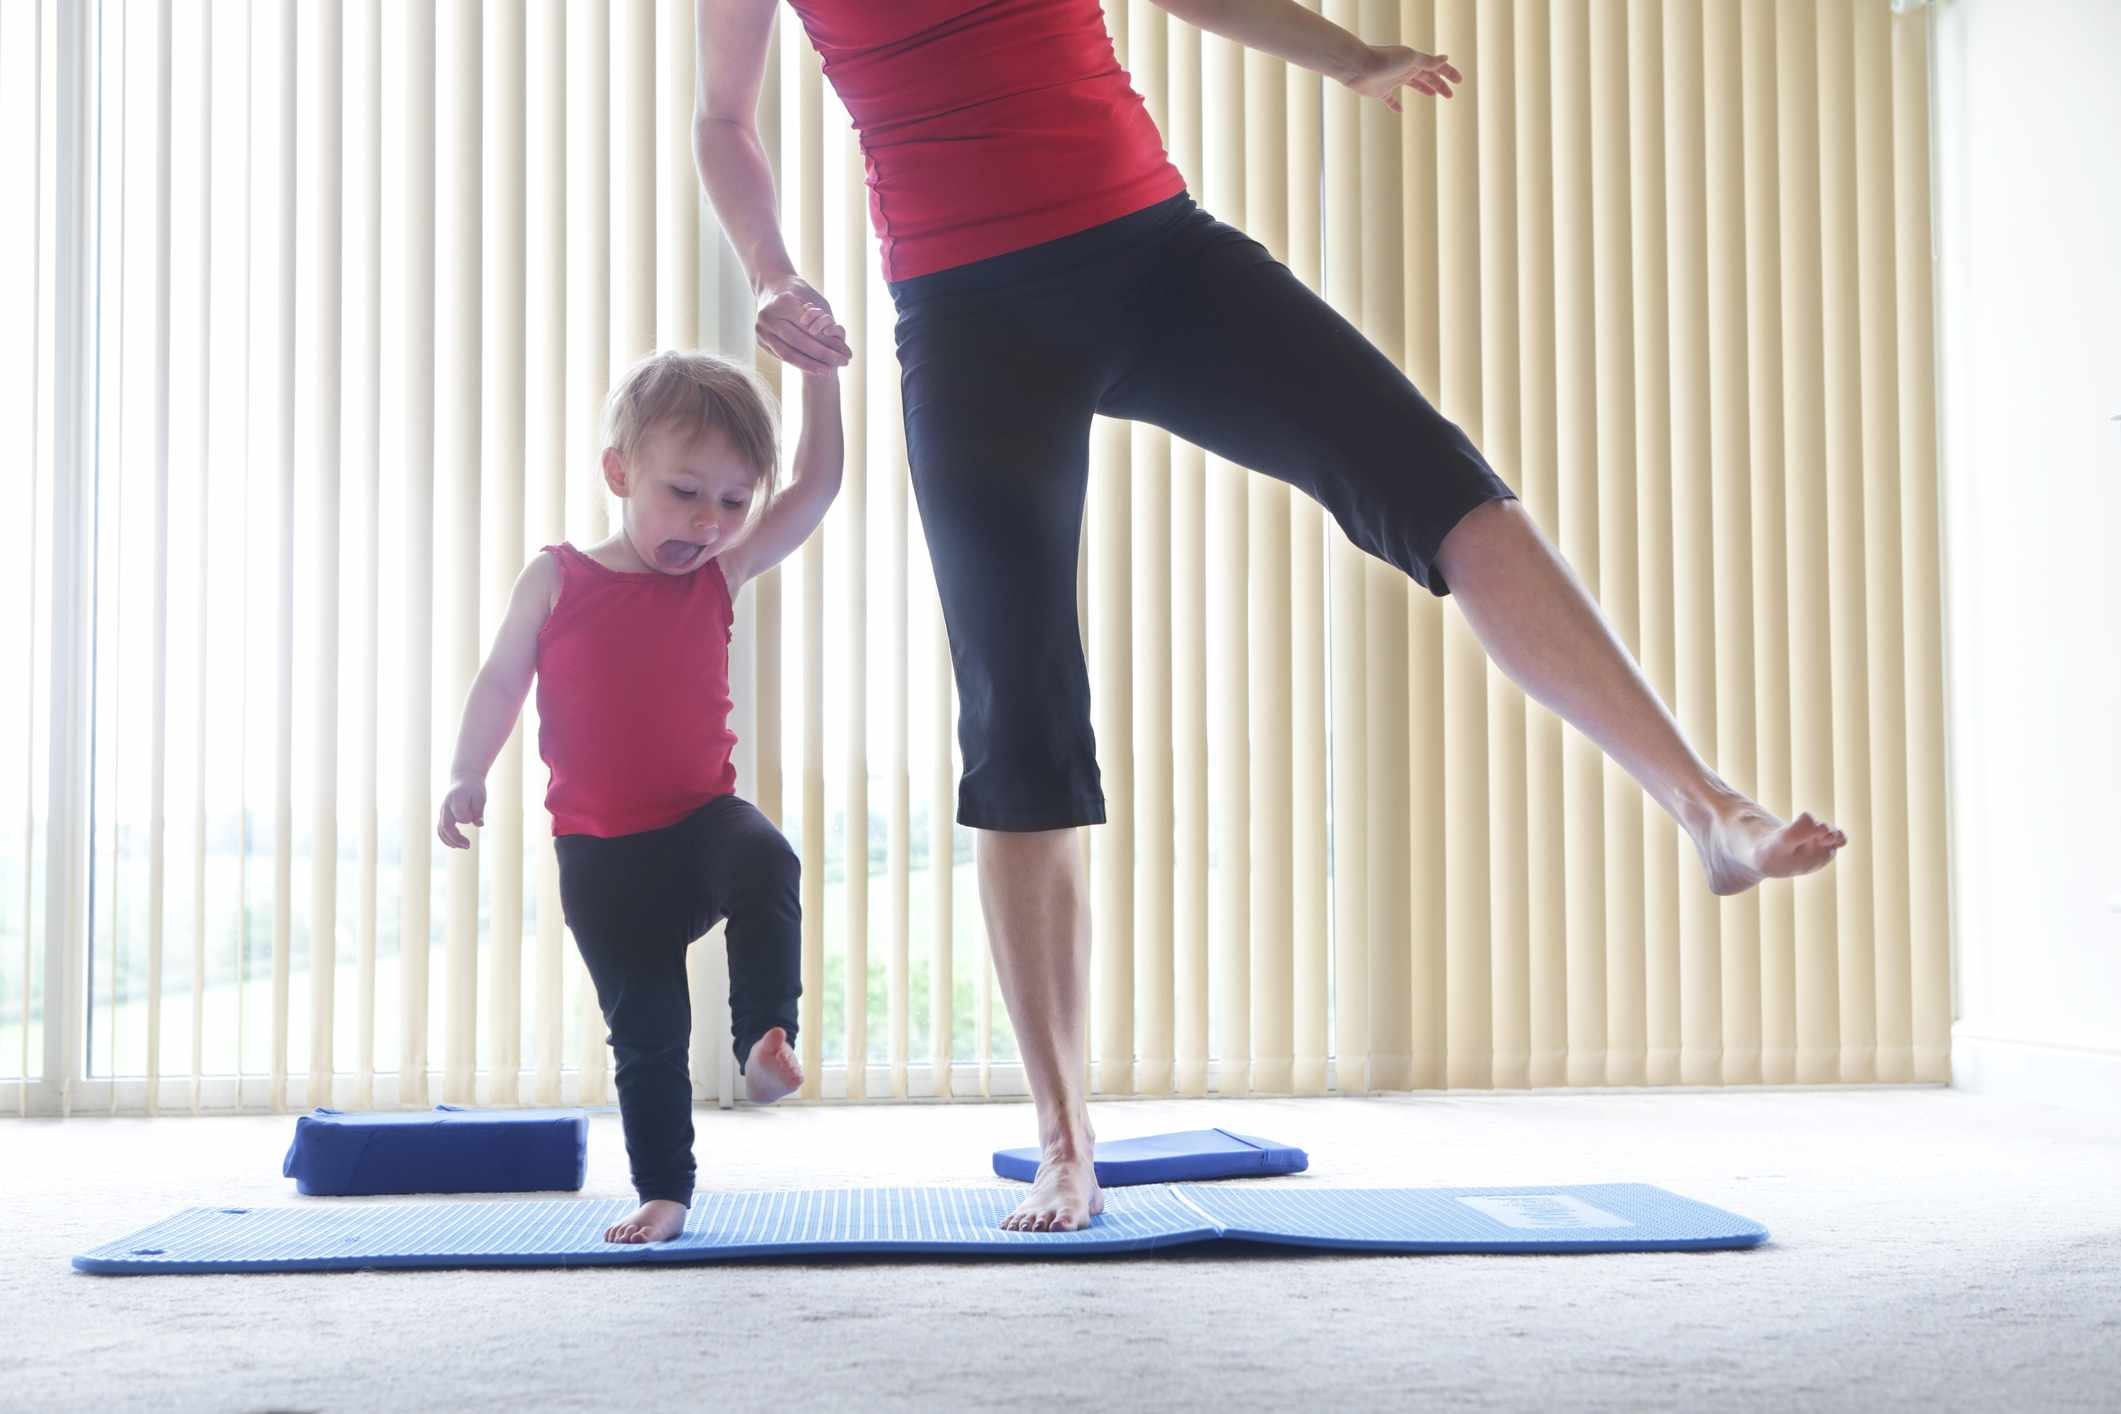 A mother and toddler exercising at home together